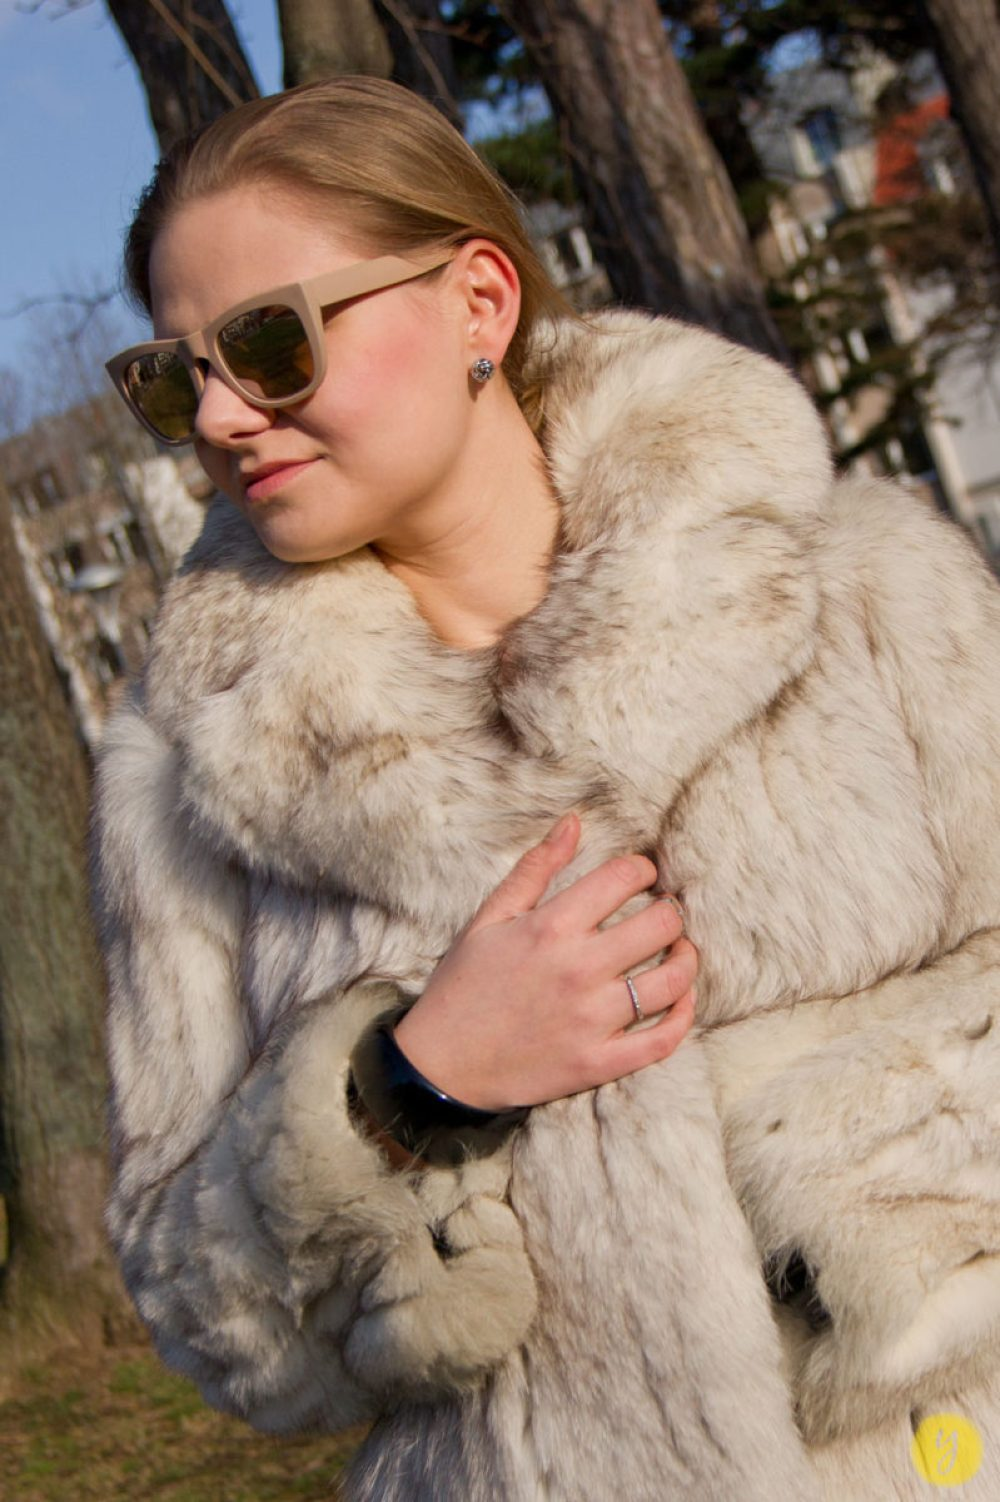 yellowgirl_Flauschig_im_Winter_Outfit_8